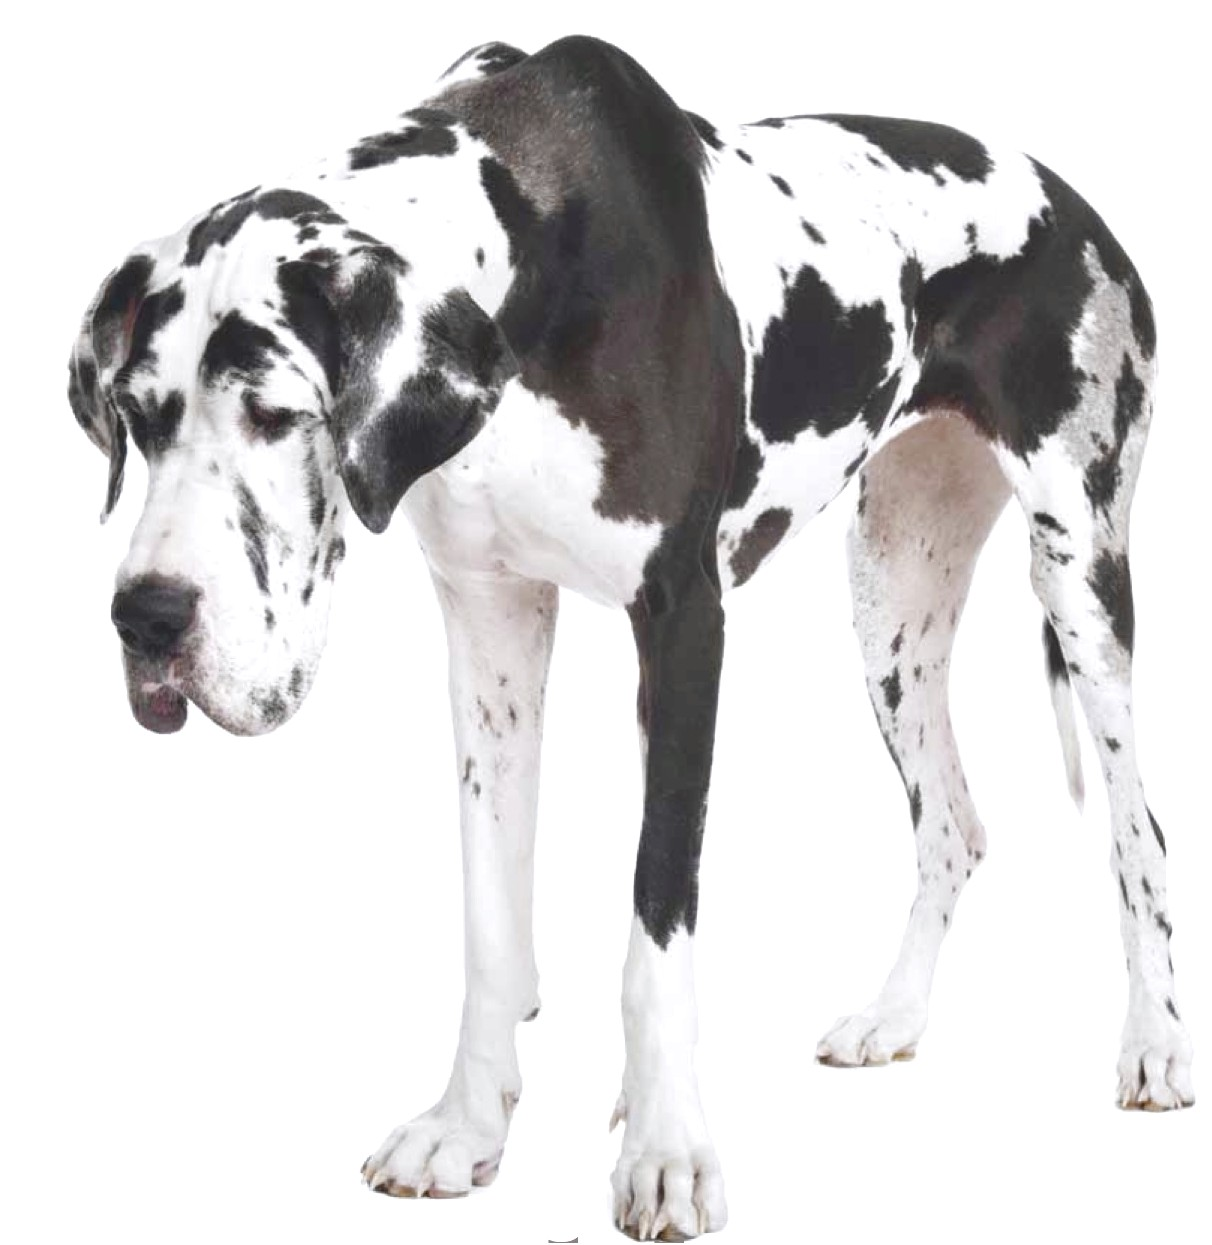 dalmatian x great dane puppies for sale